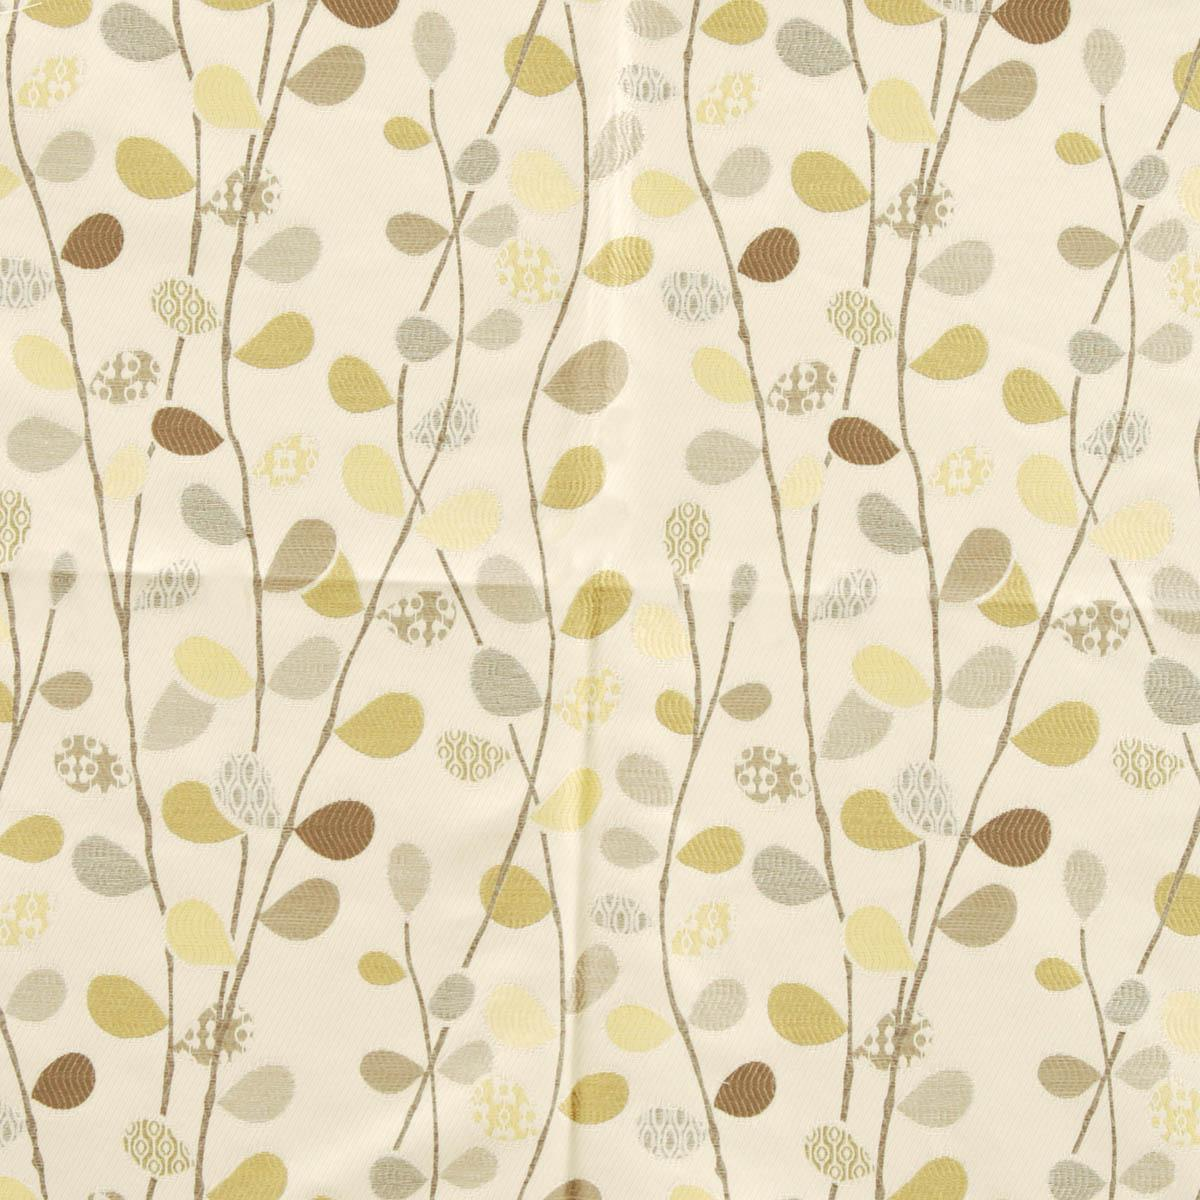 Buy cheap curtain fabric compare curtains blinds for Best place to buy fabric for curtains